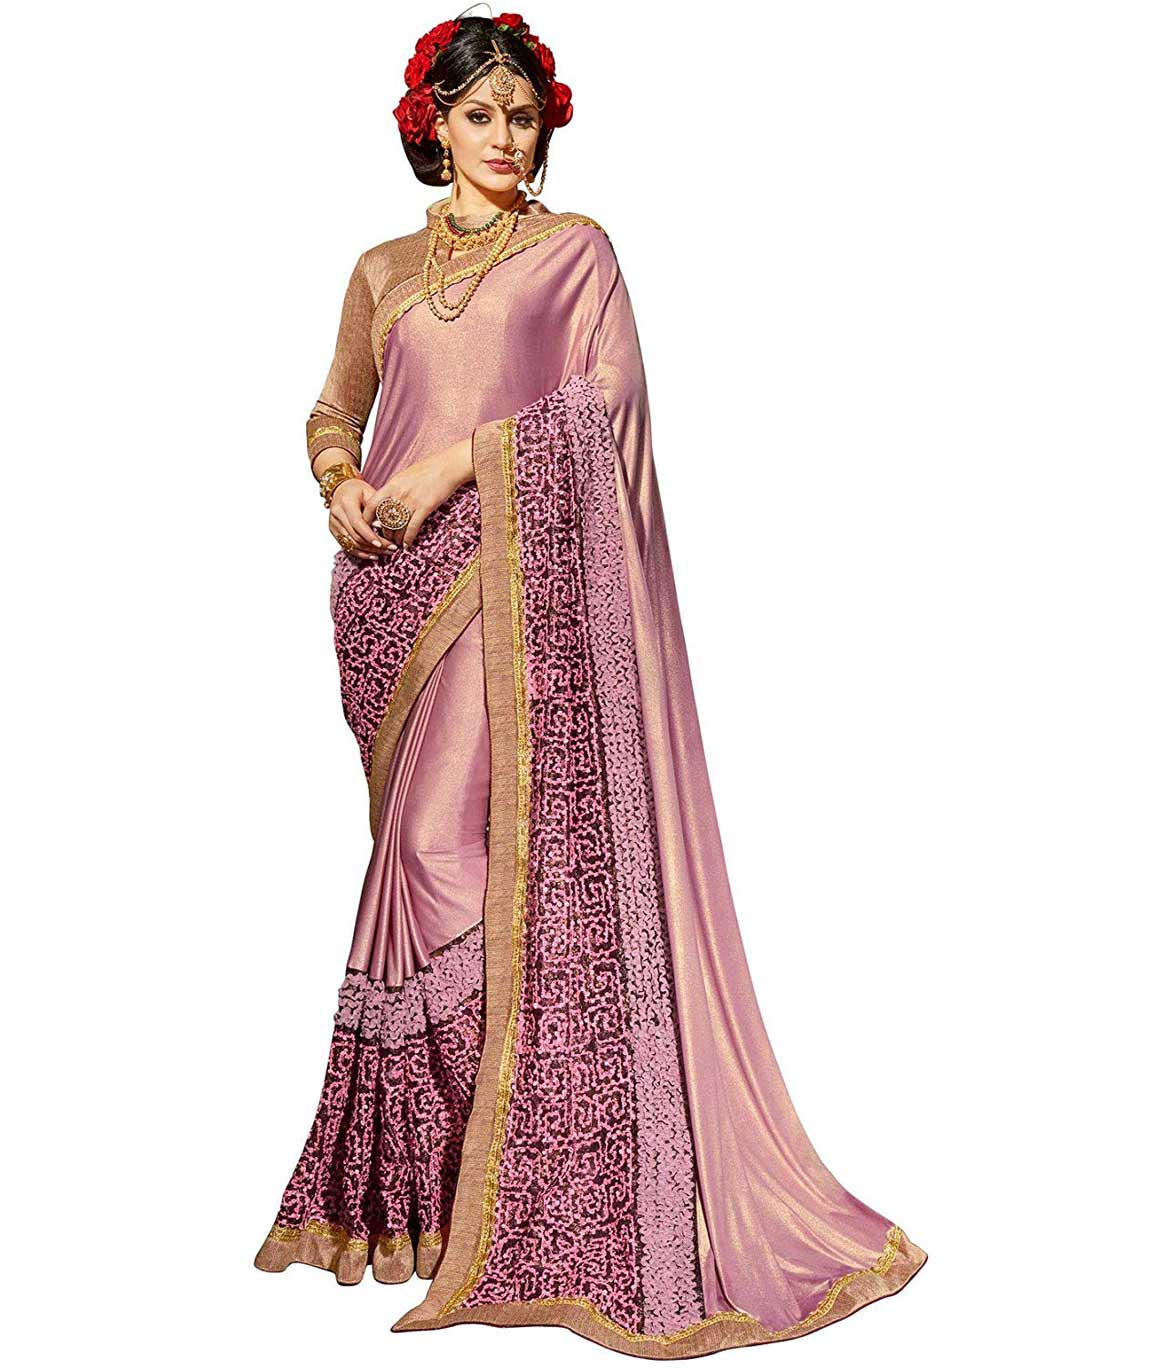 Shangrila Designer Shimmer Net Embroidery Satin Silk Saree with Brocade Lace Unstitched Blouse Piece (Purple MARVEL2-8331)